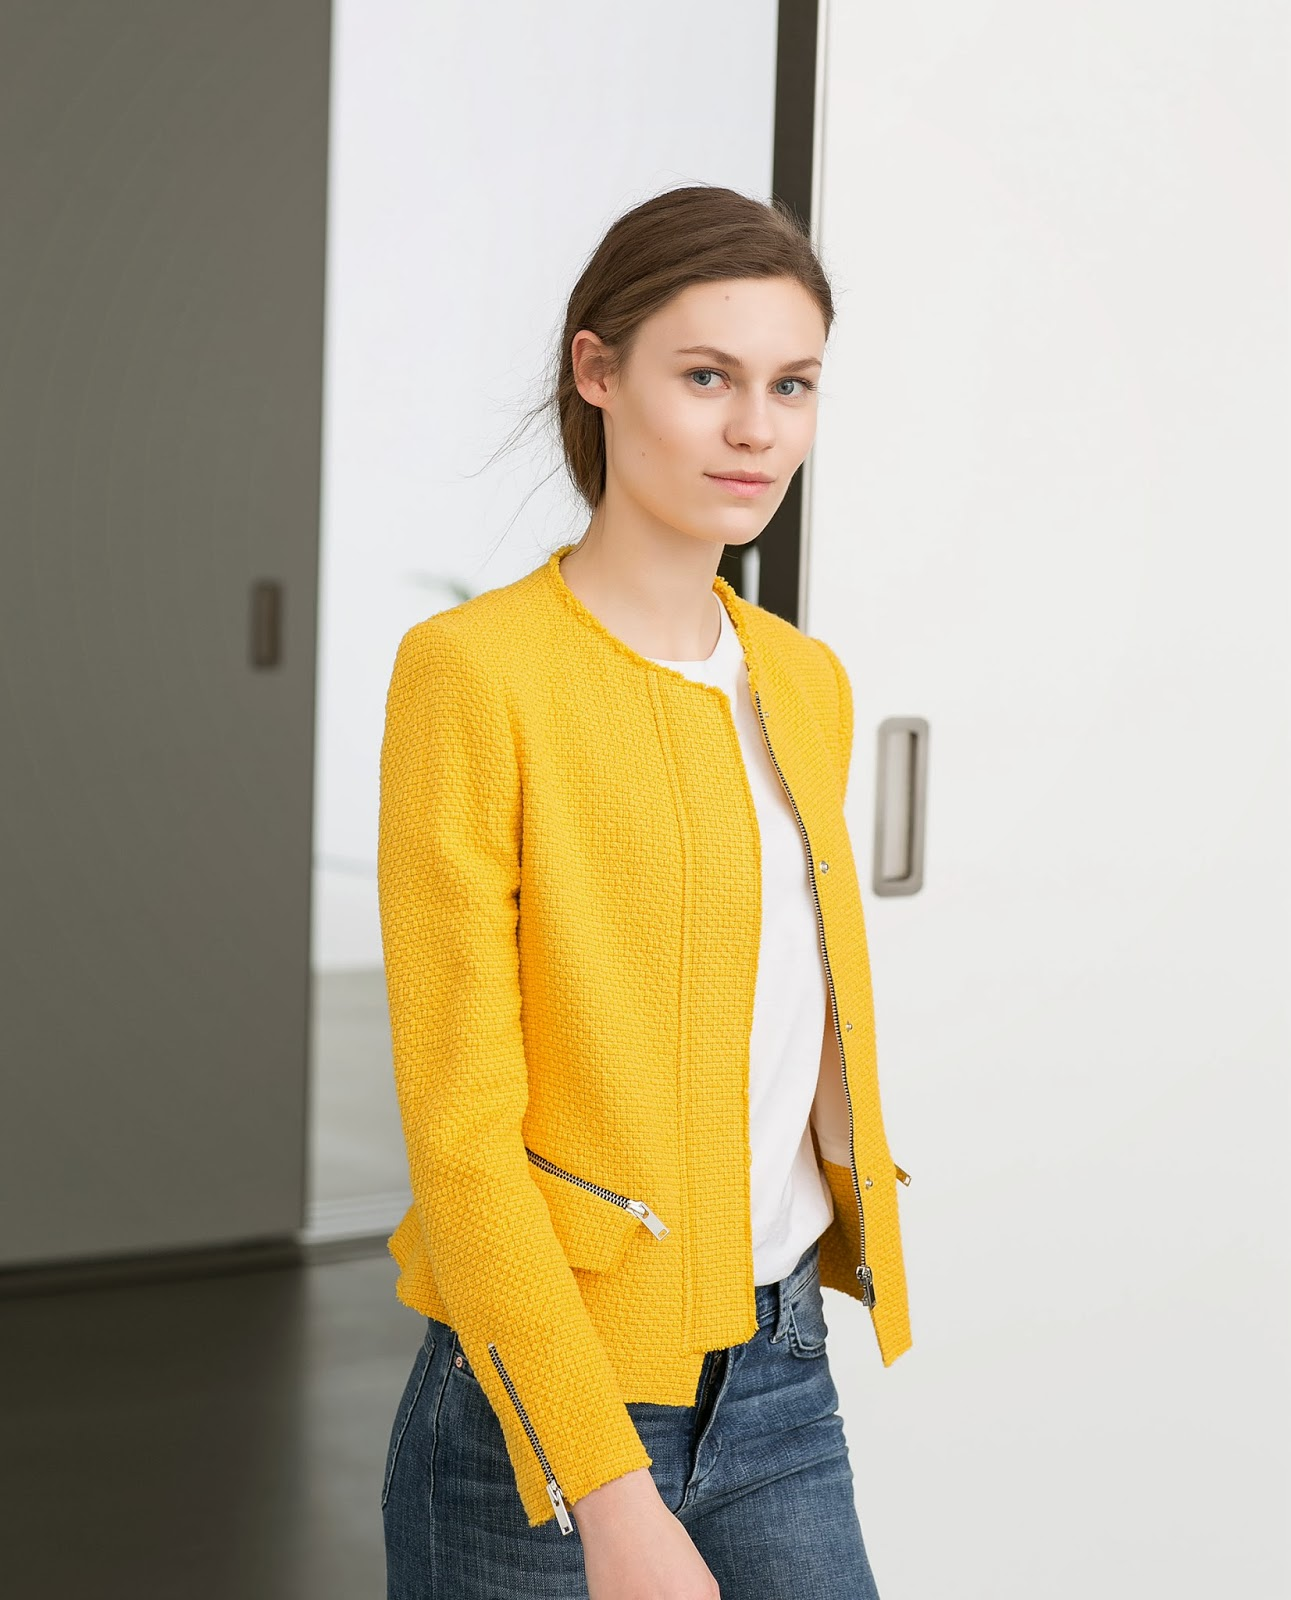 zara yellow jacket